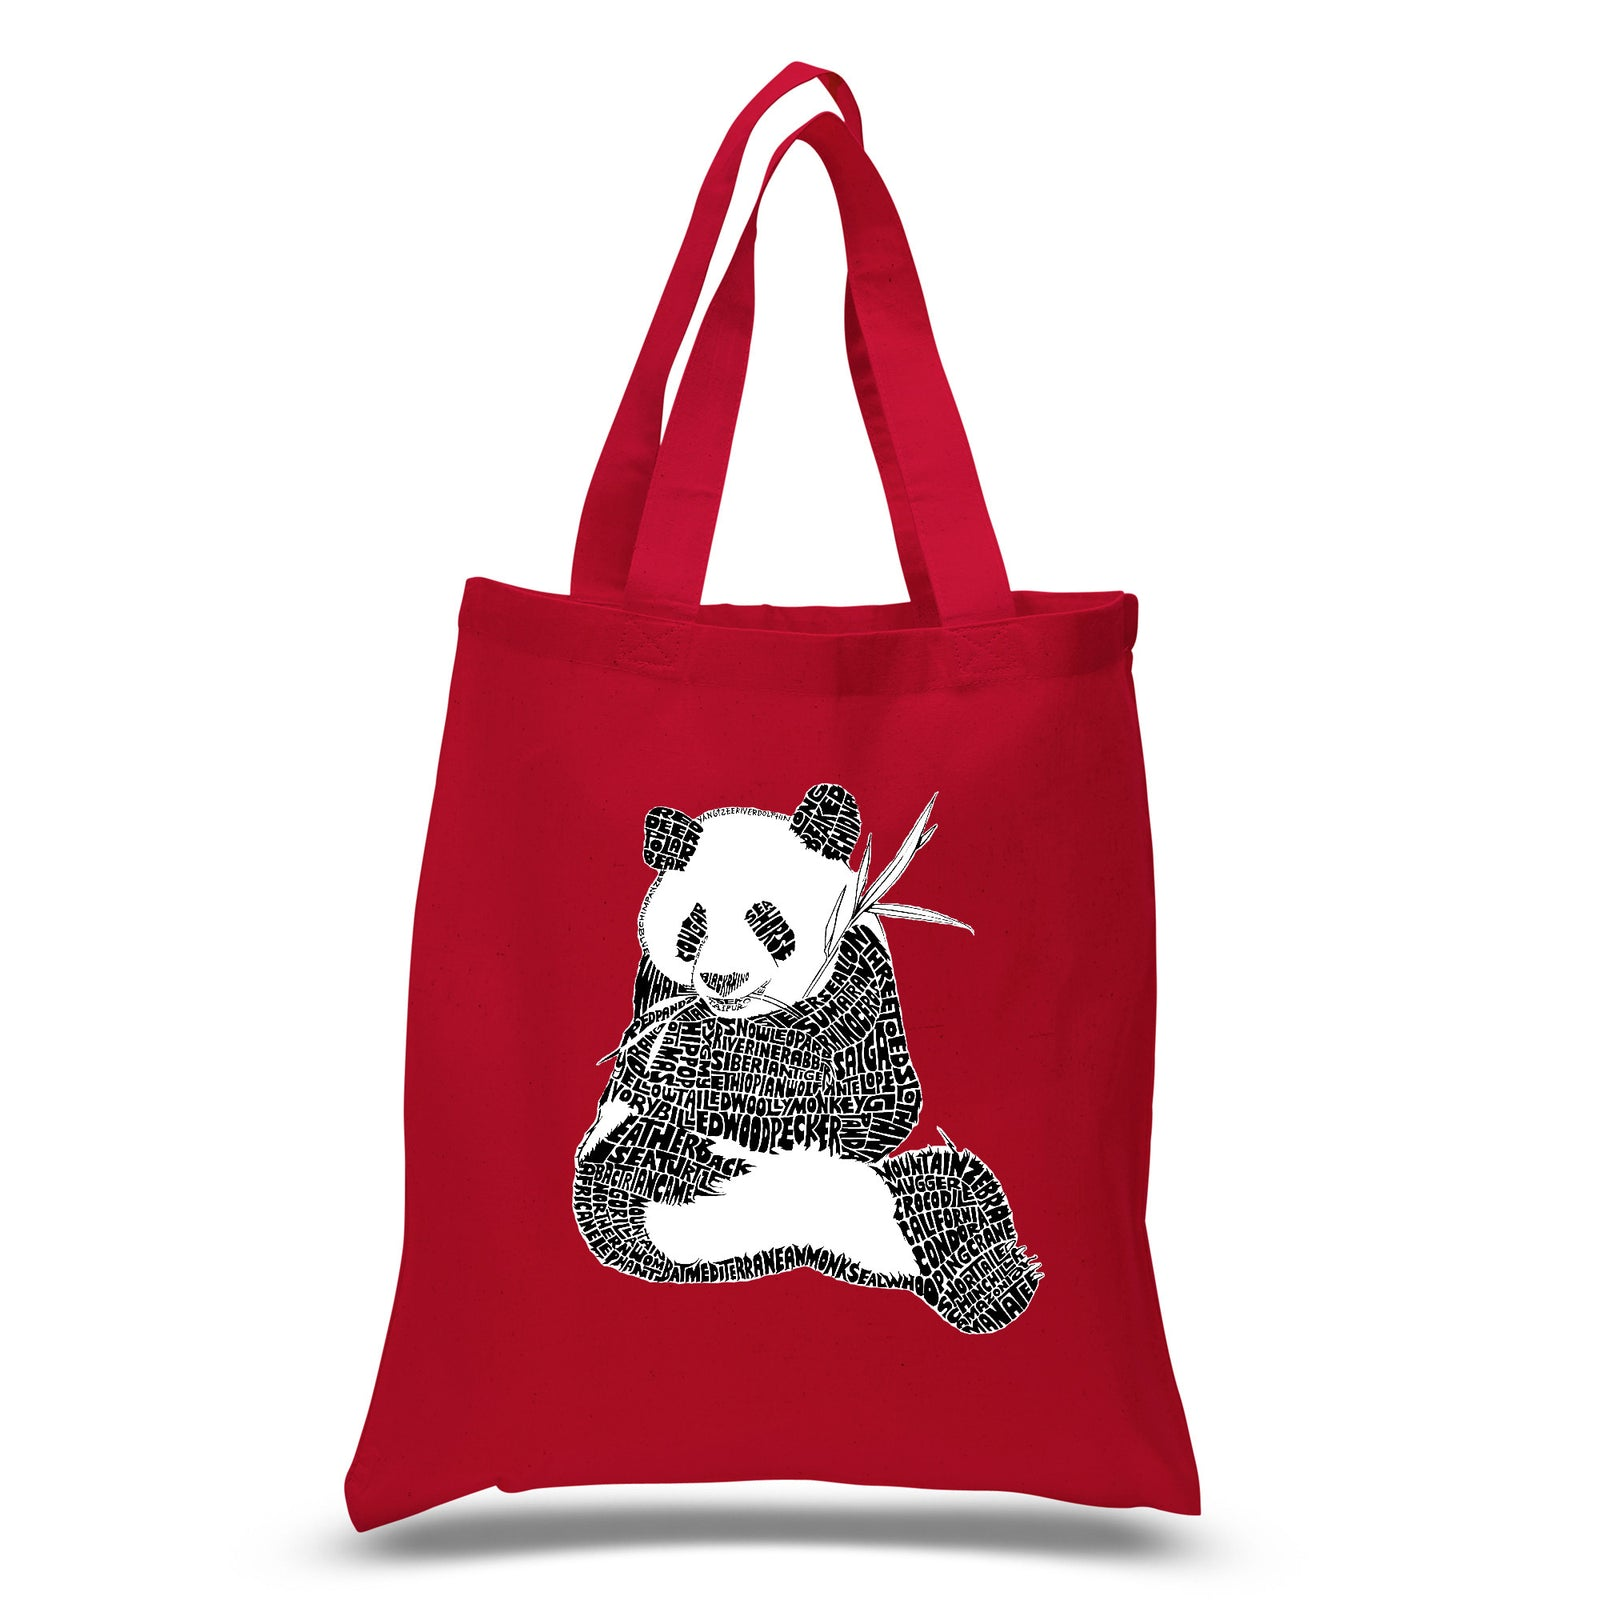 Small Tote Bag - ENDANGERED SPECIES